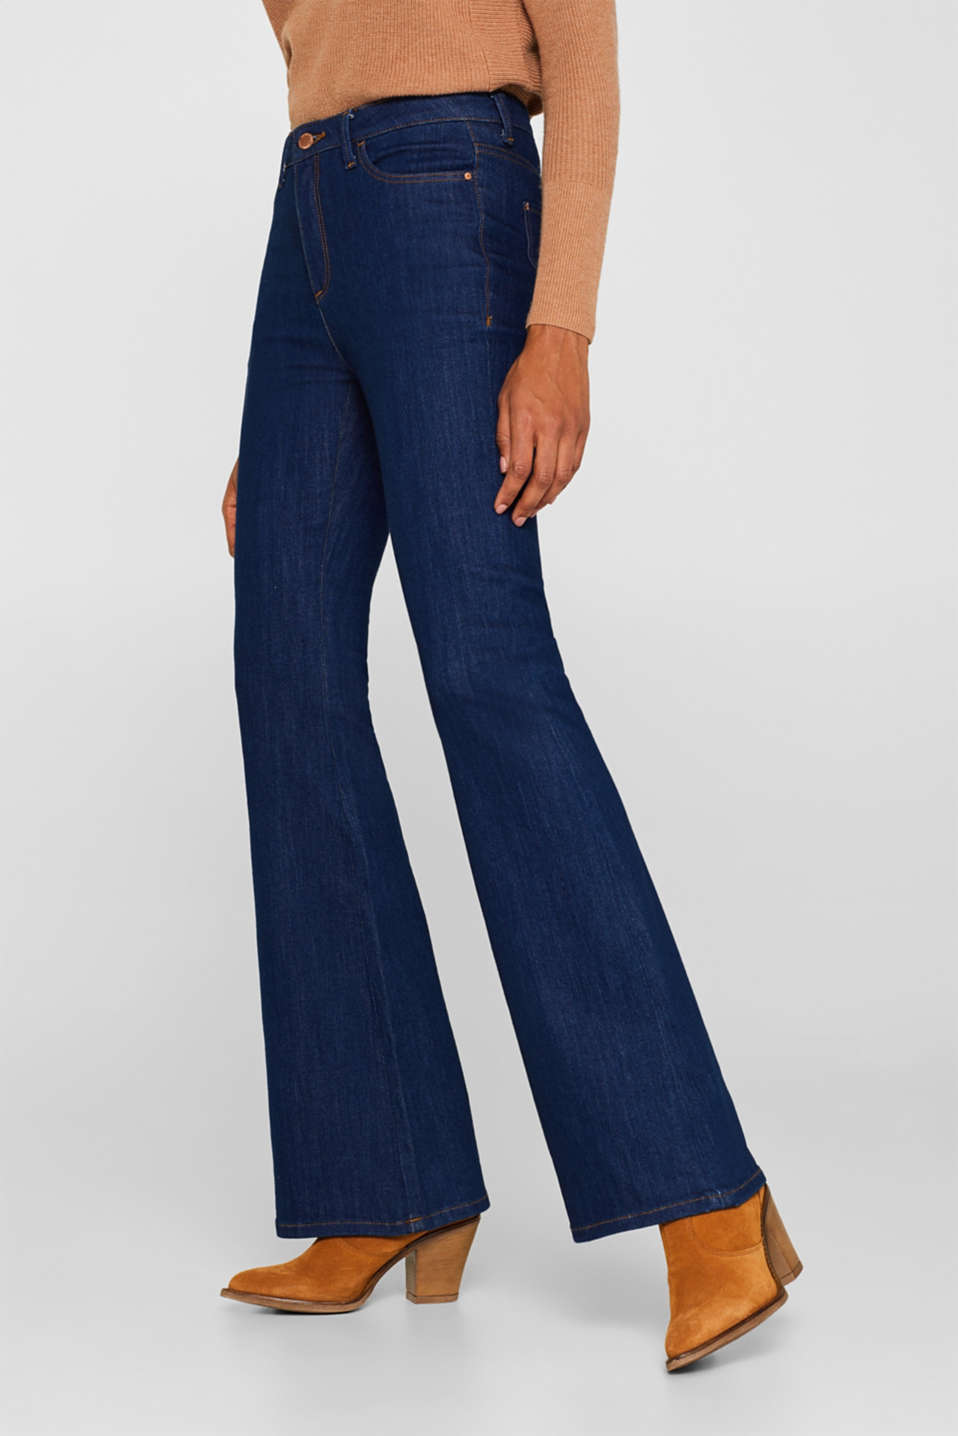 Bootcut stretch jeans, BLUE MEDIUM WASH, detail image number 7